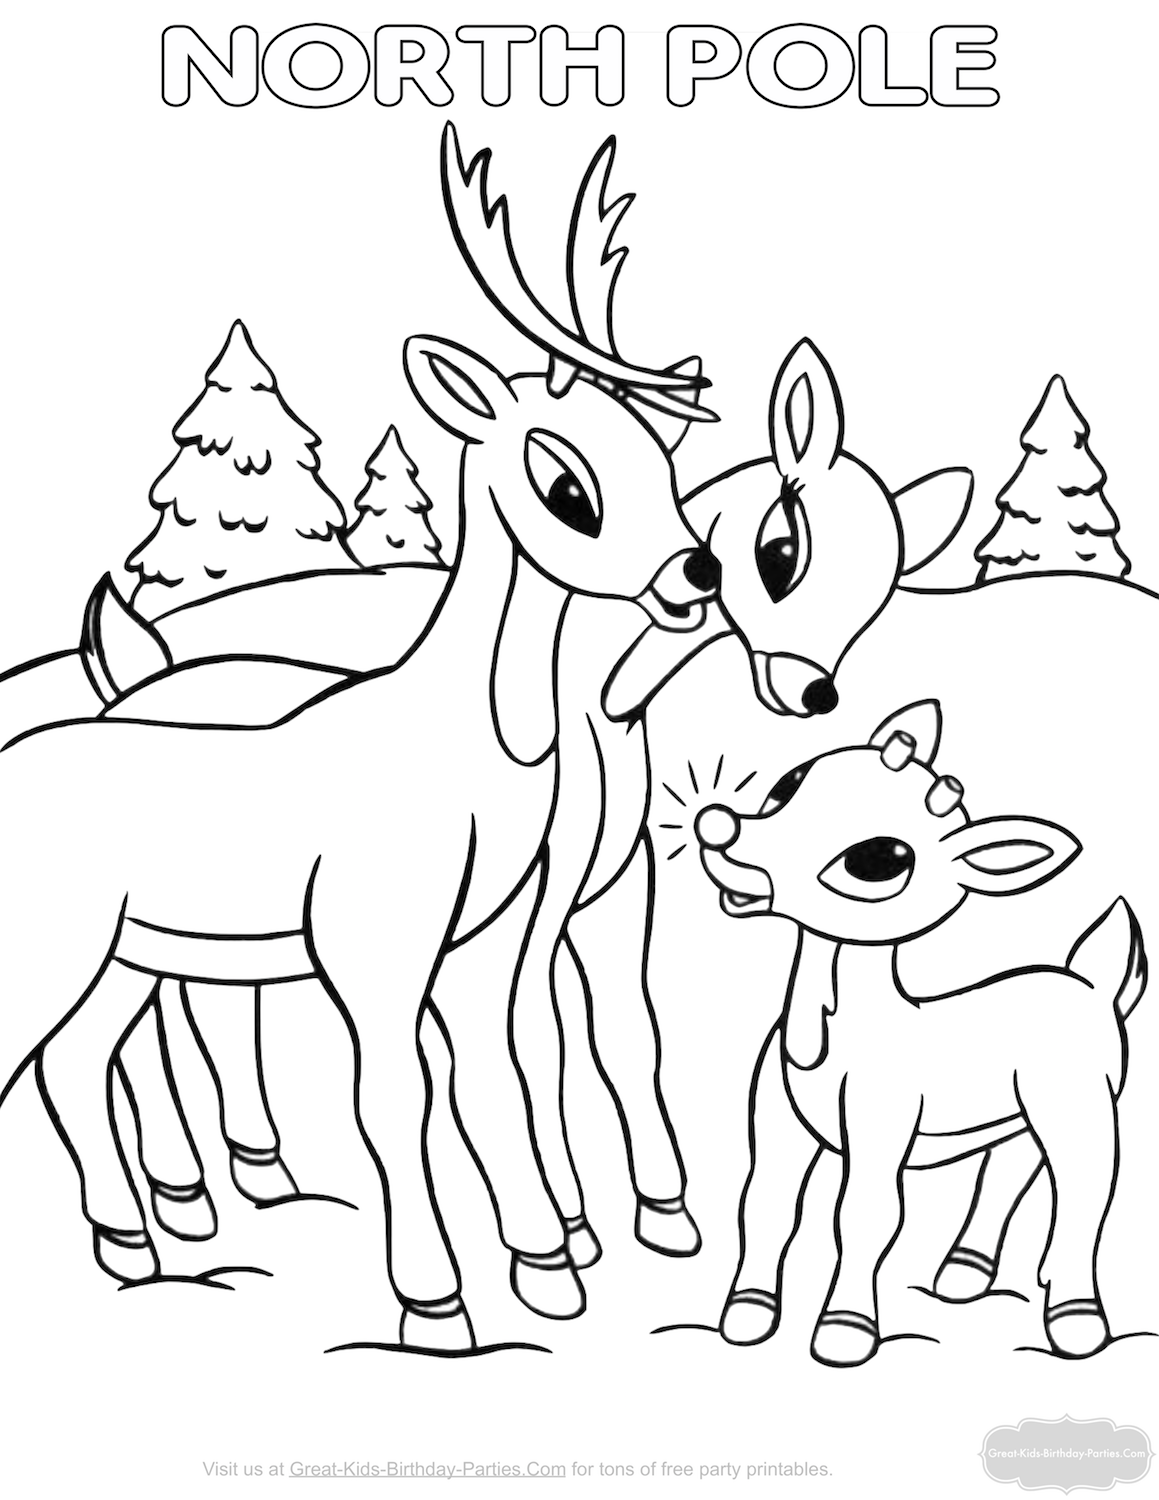 children are filled with excitement and looking forward to the big day keep them entertained with fun christmas coloring pages